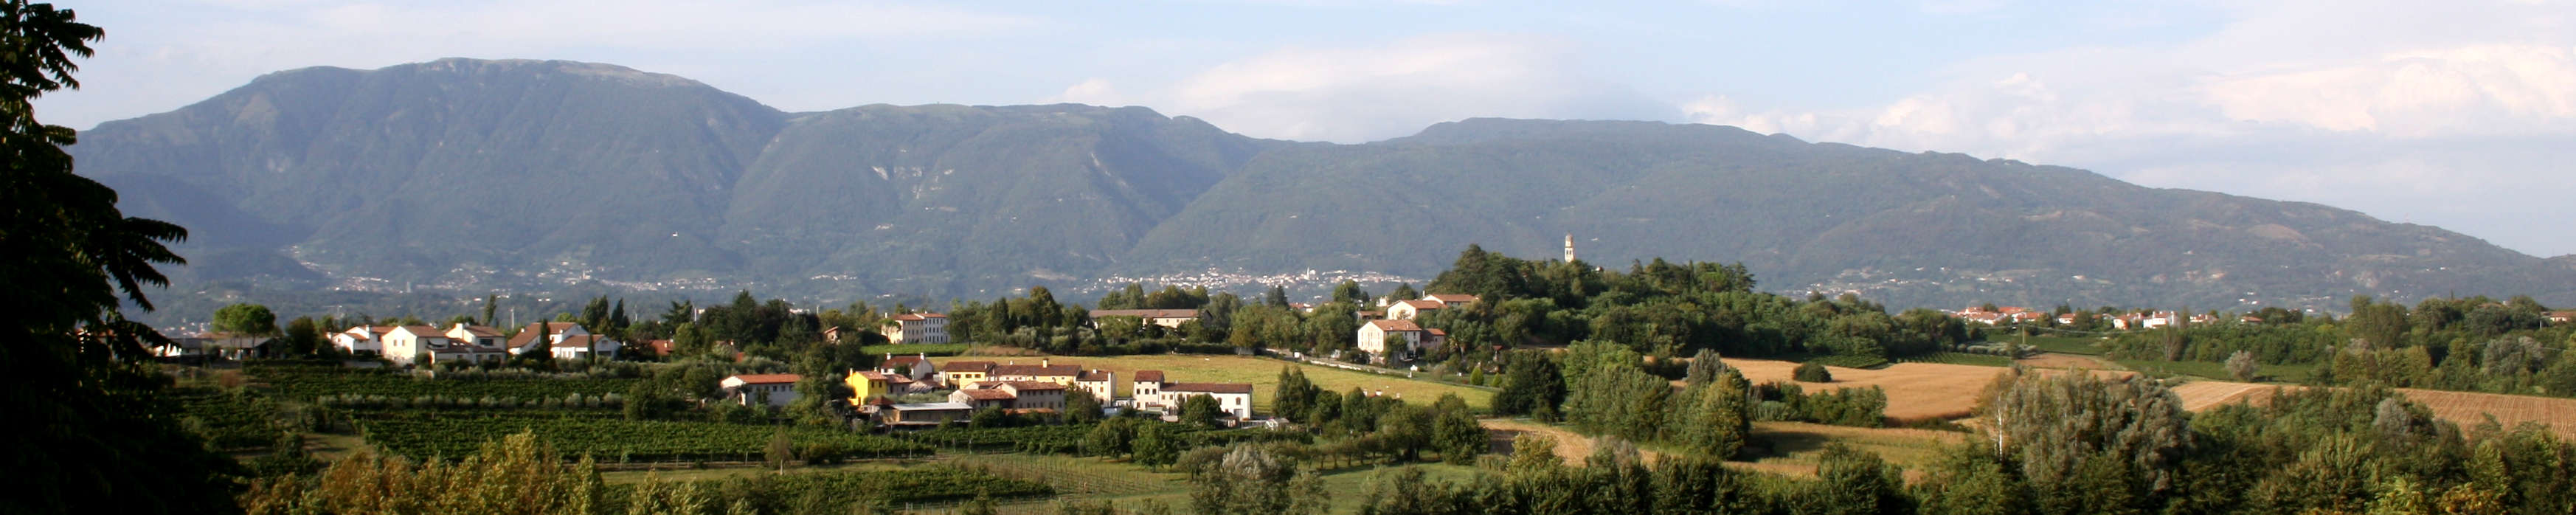 Vista panoramica di COLLE UMBERTO